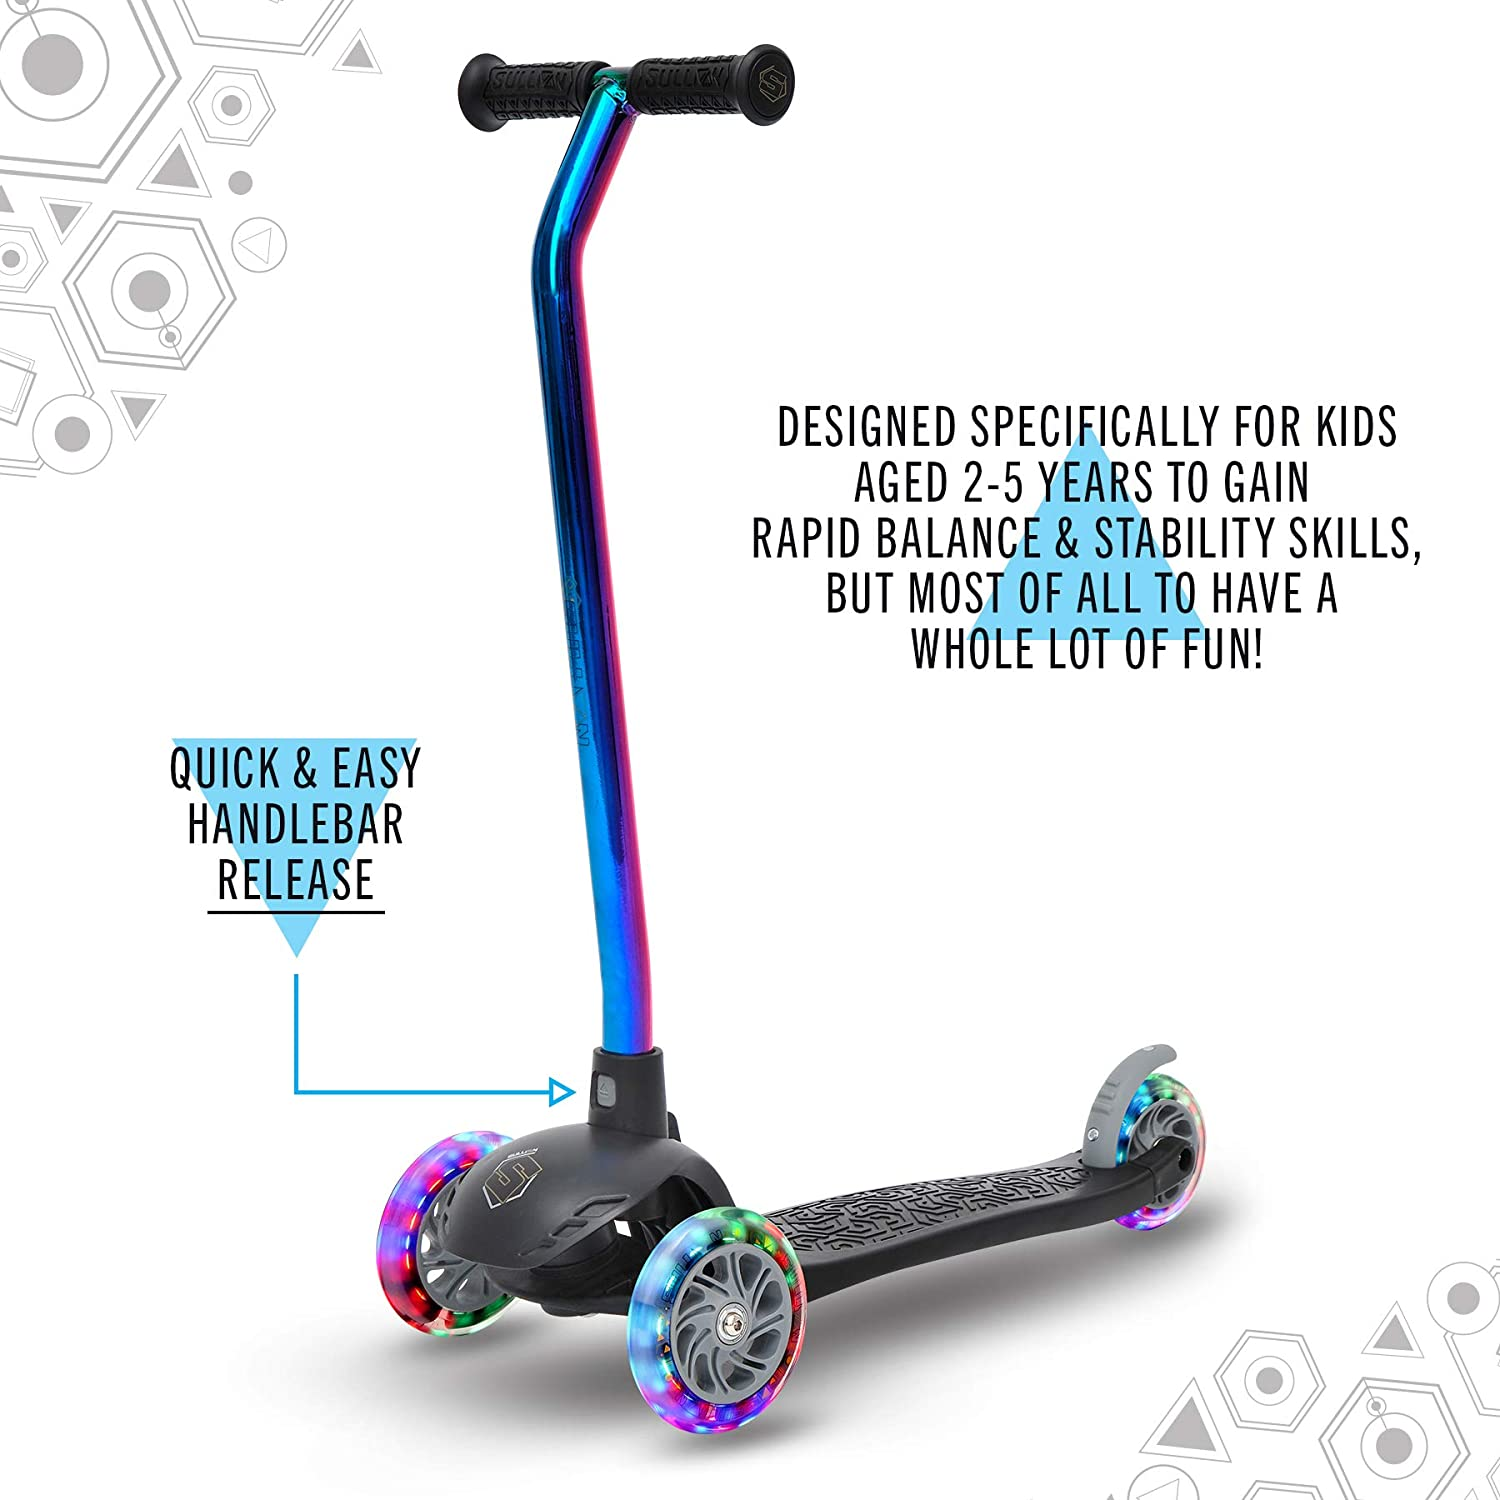 Ages 2-5 Years Sullivan Lean N Glide Tri Scooter Light up Wheels